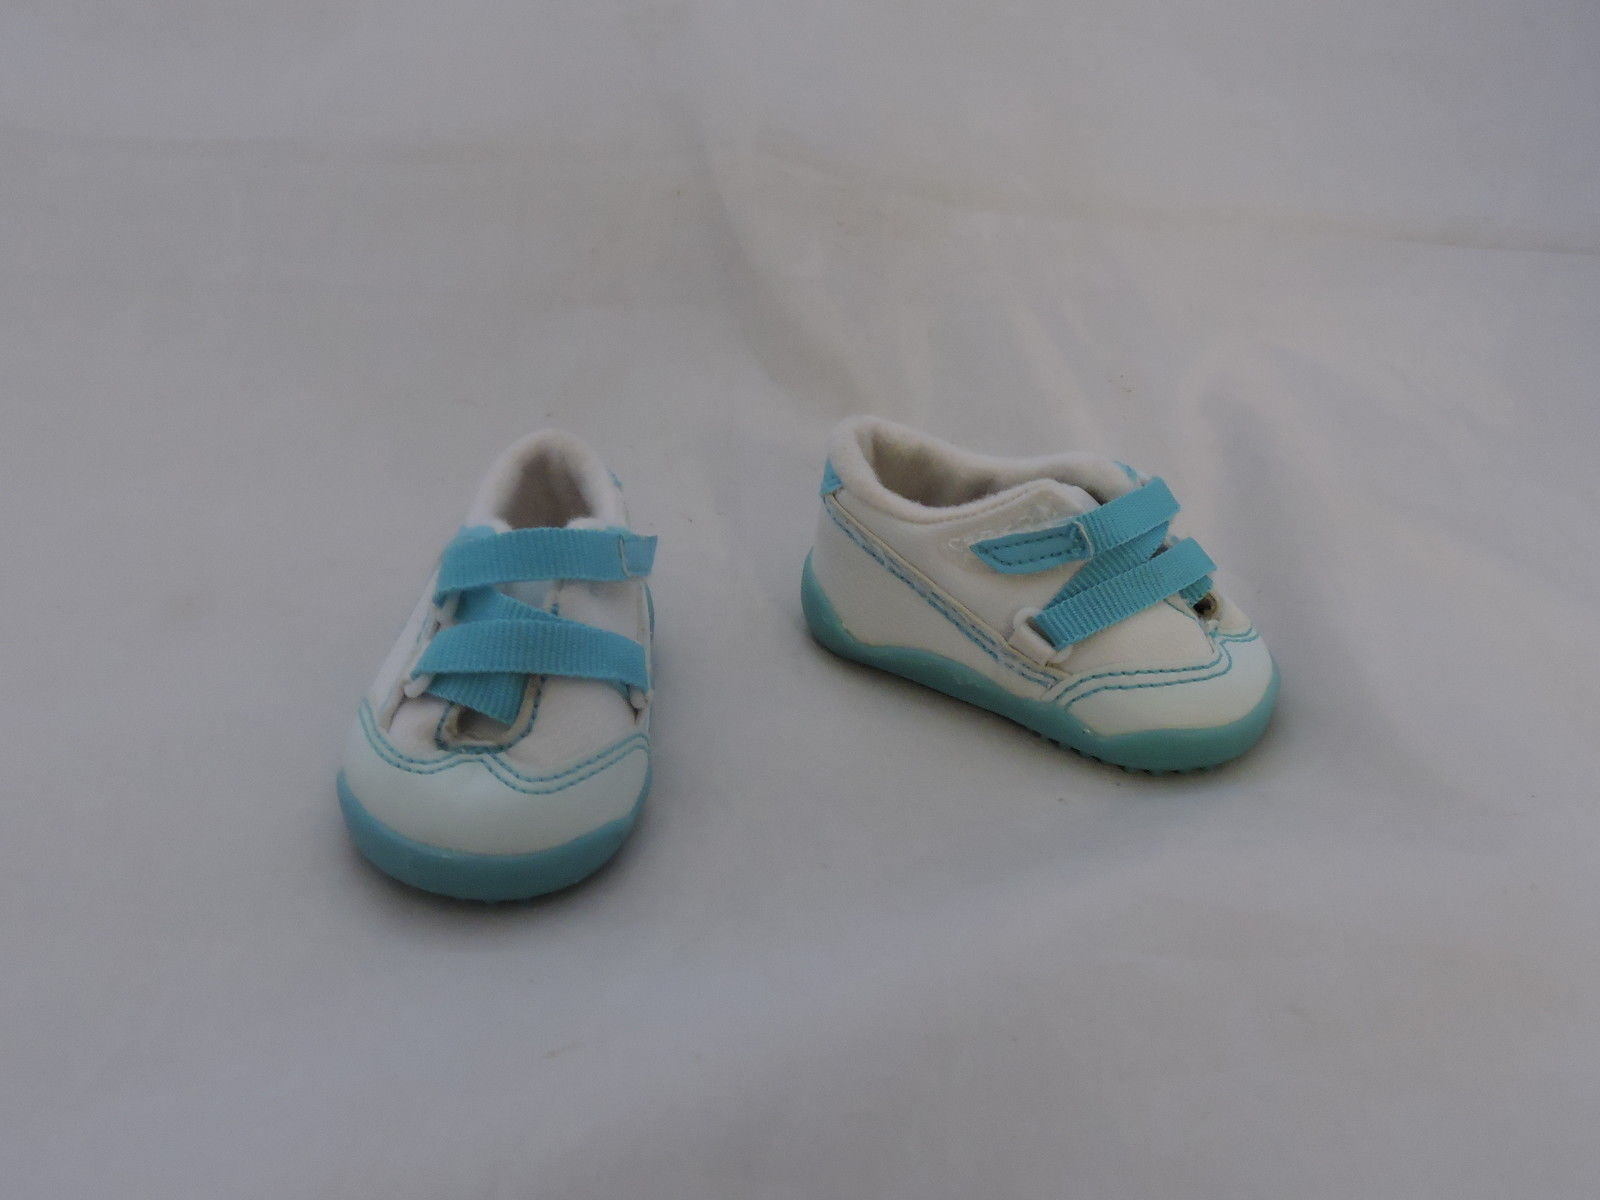 American girl retired blue and white sneakers